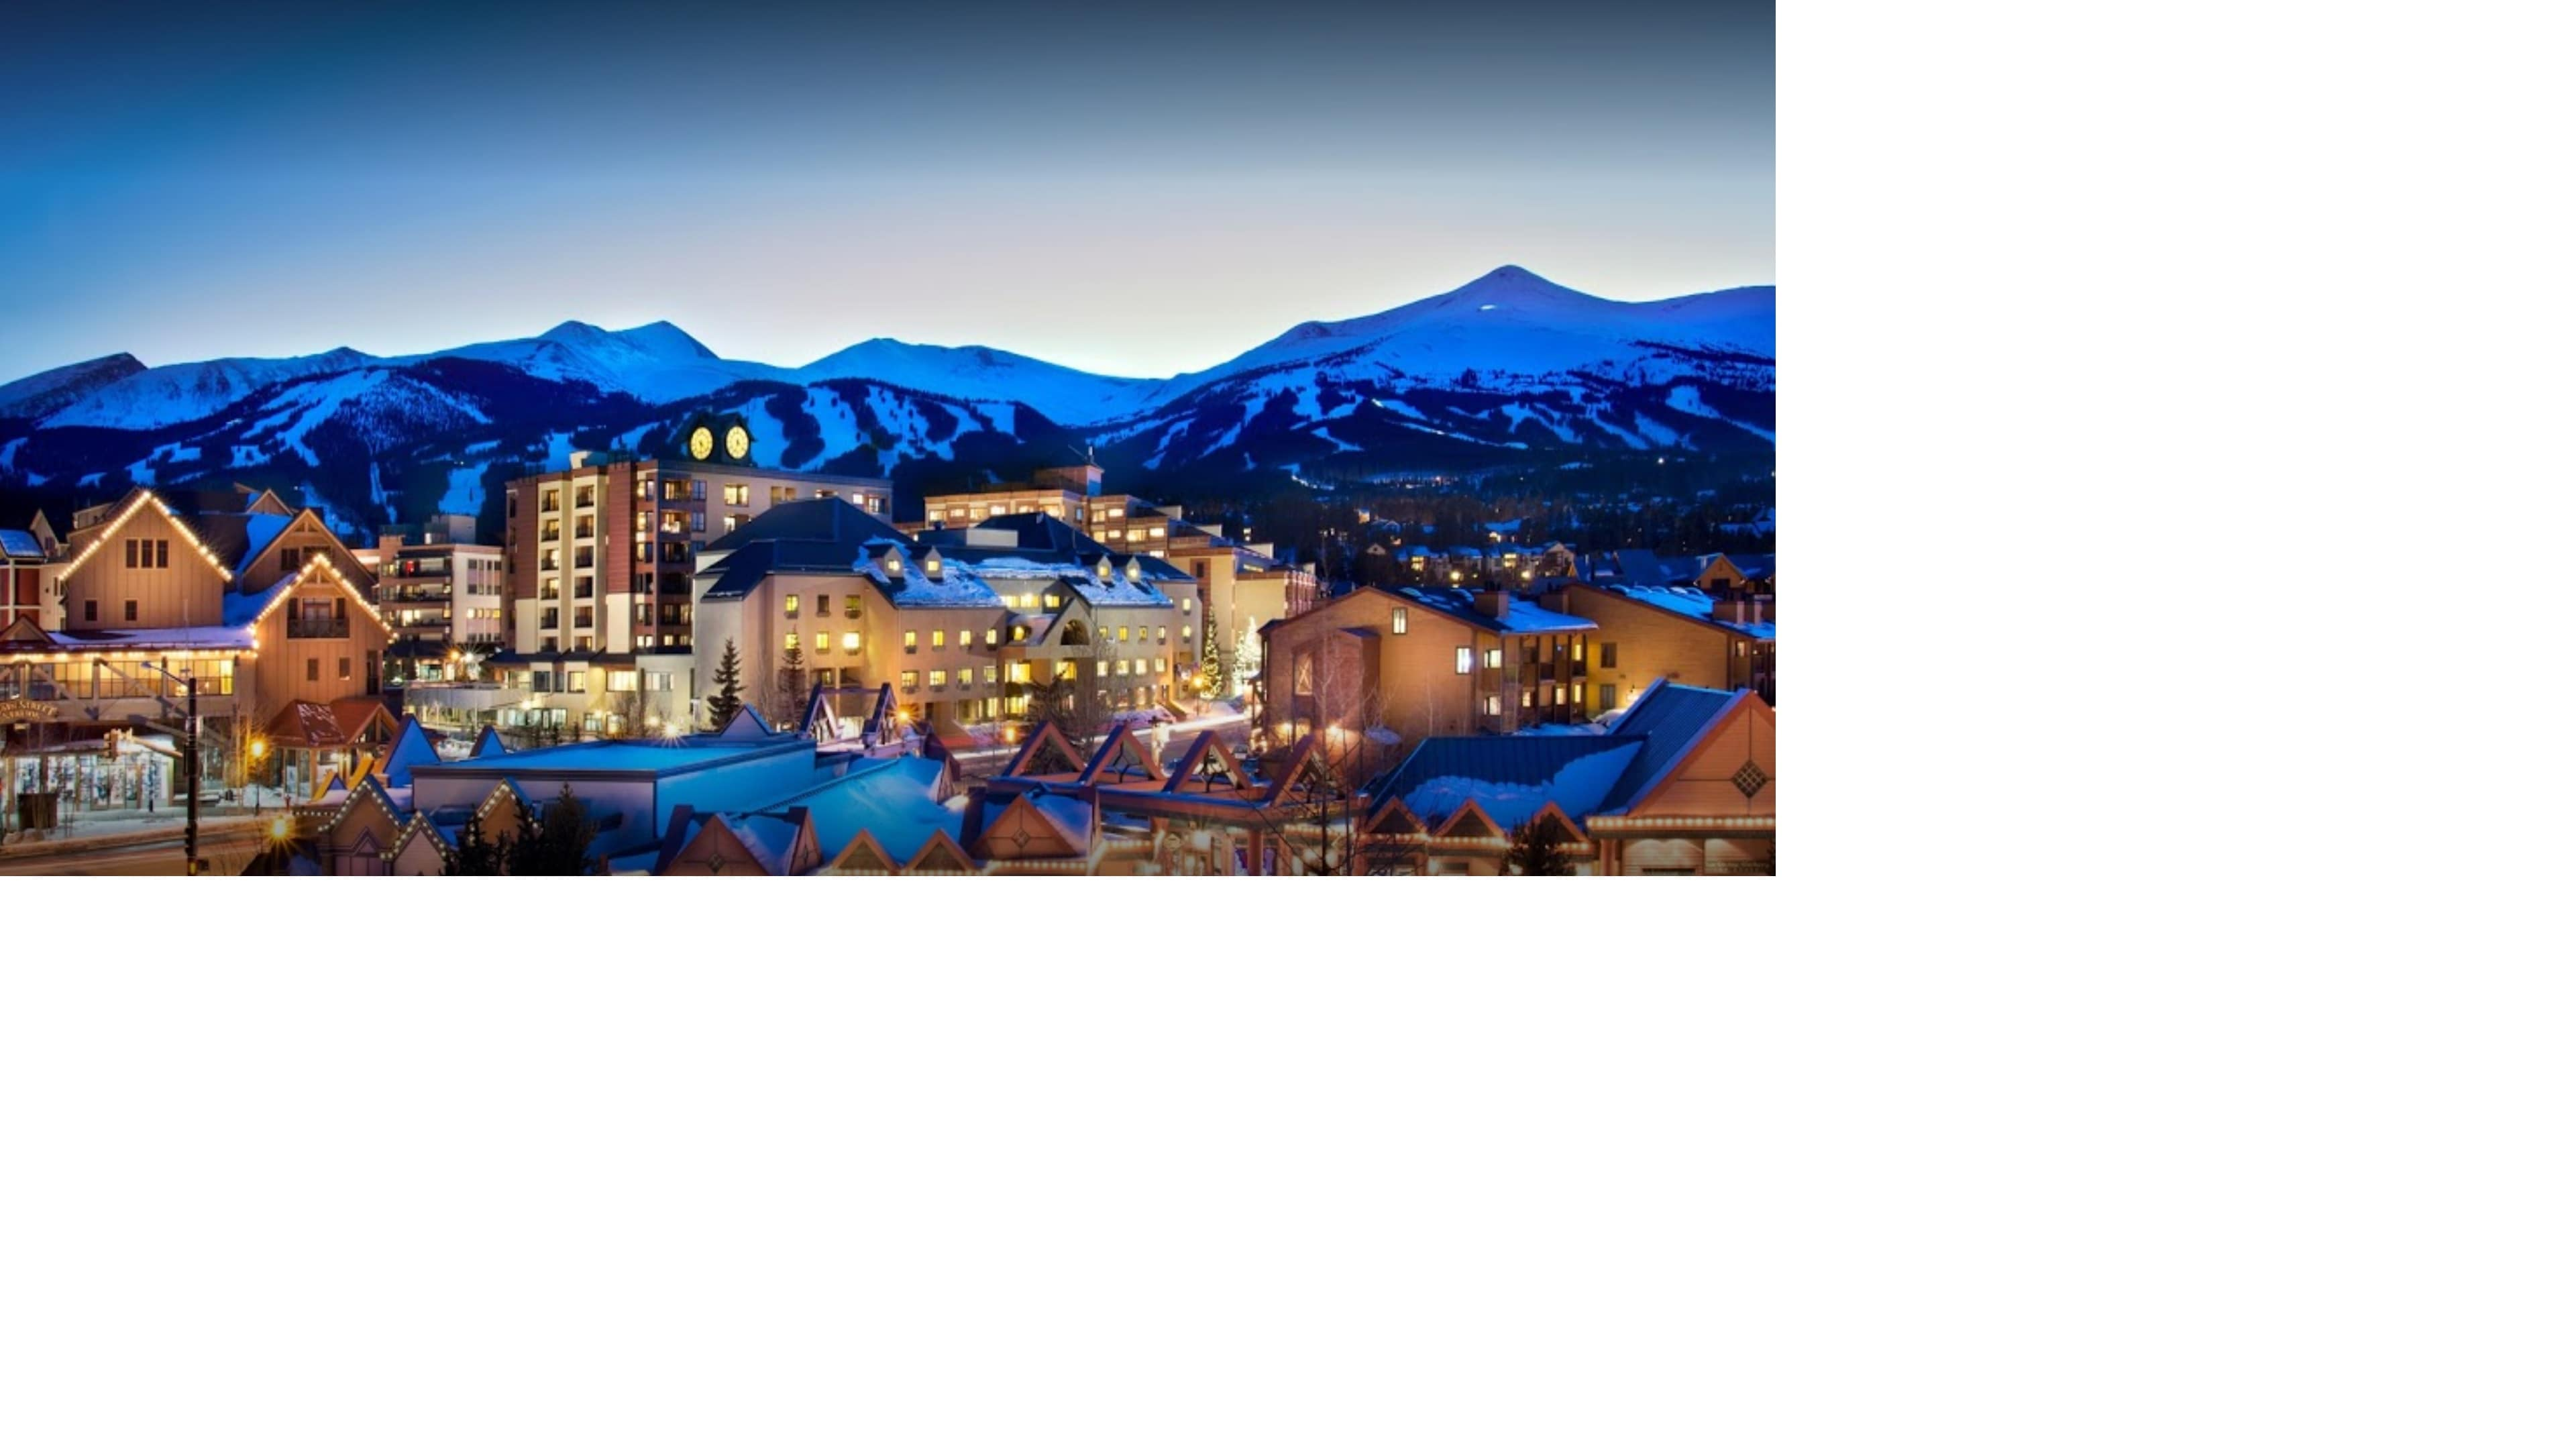 Hotels in Breckenridge CO The Village Hotel